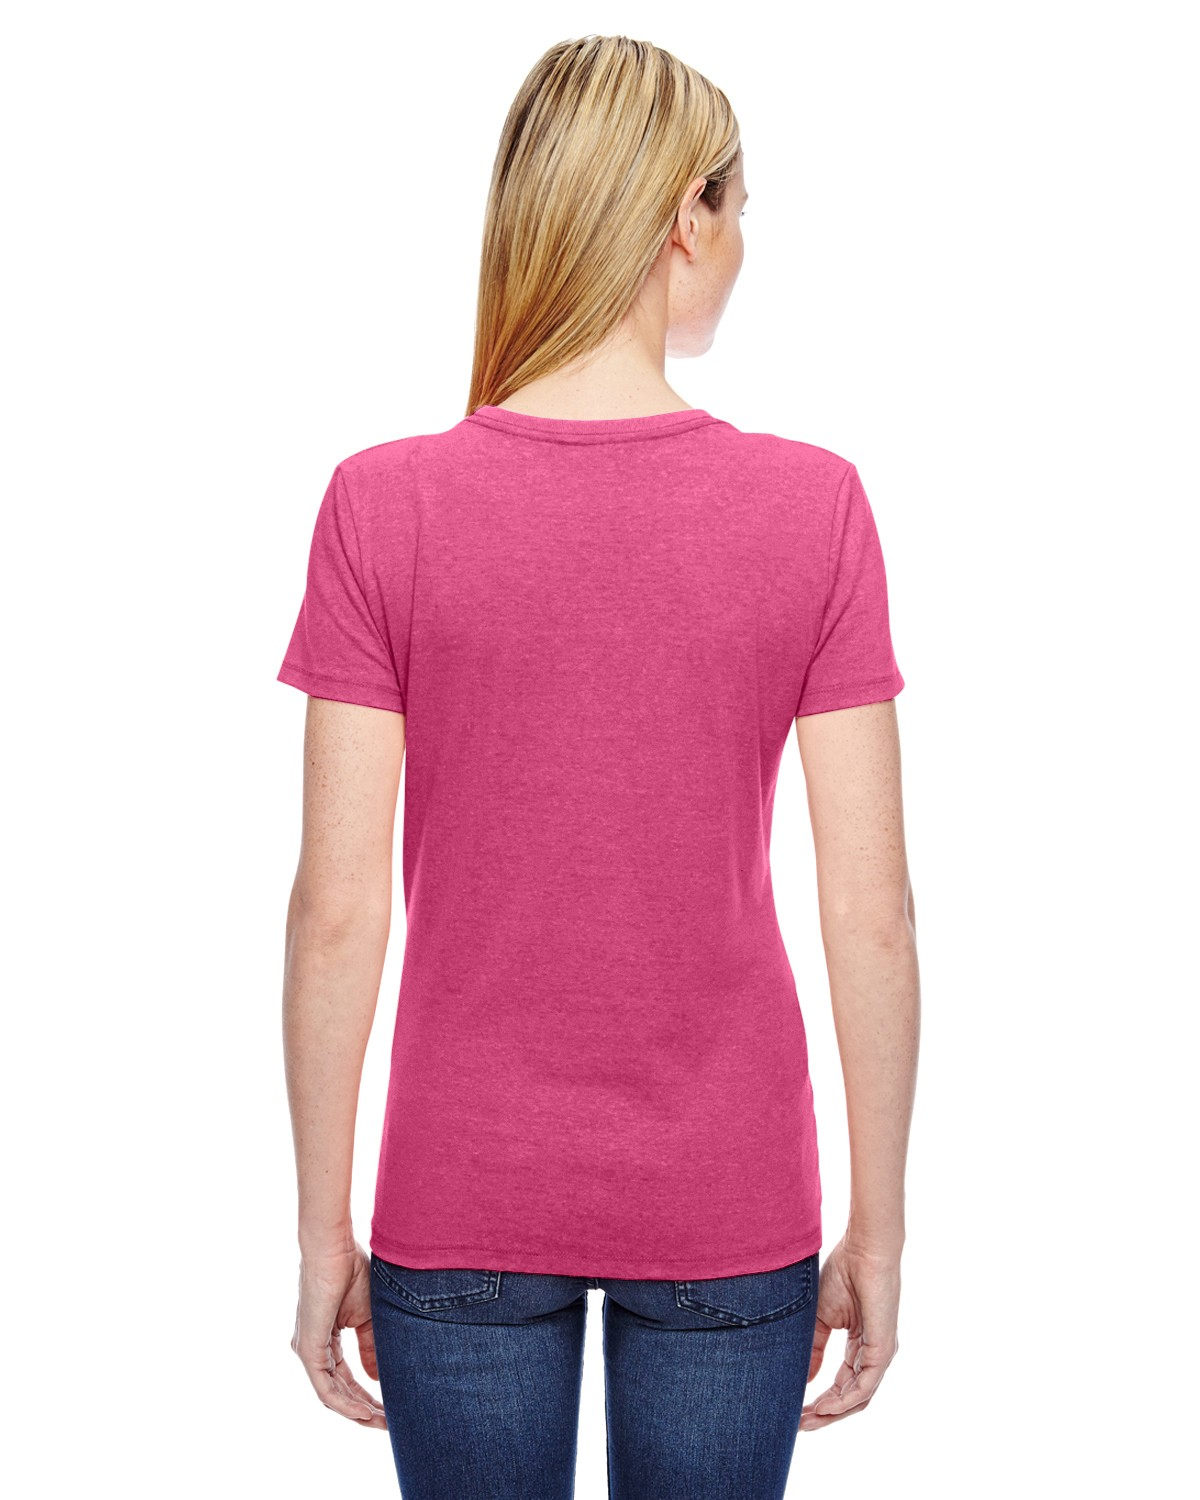 L3930R Fruit of the Loom RETRO HTR PINK